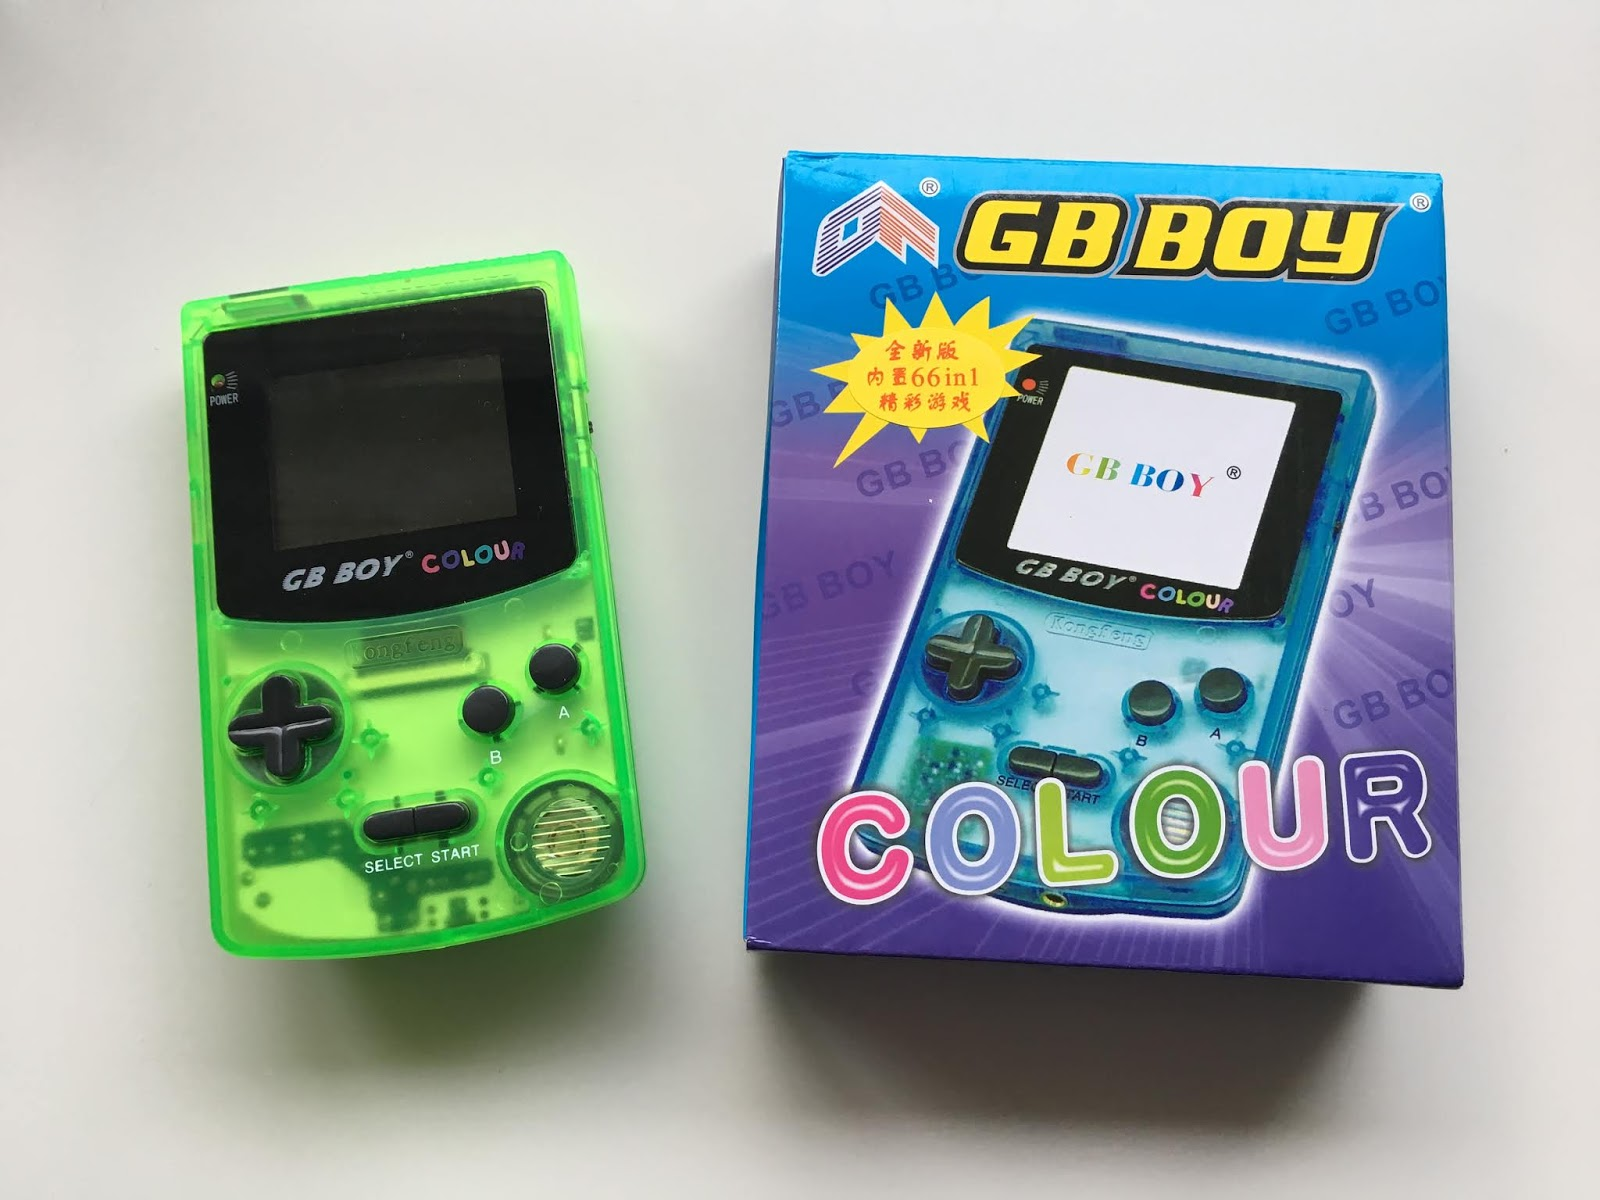 GB Boy Colour - Chinese Gameboy Color Clone